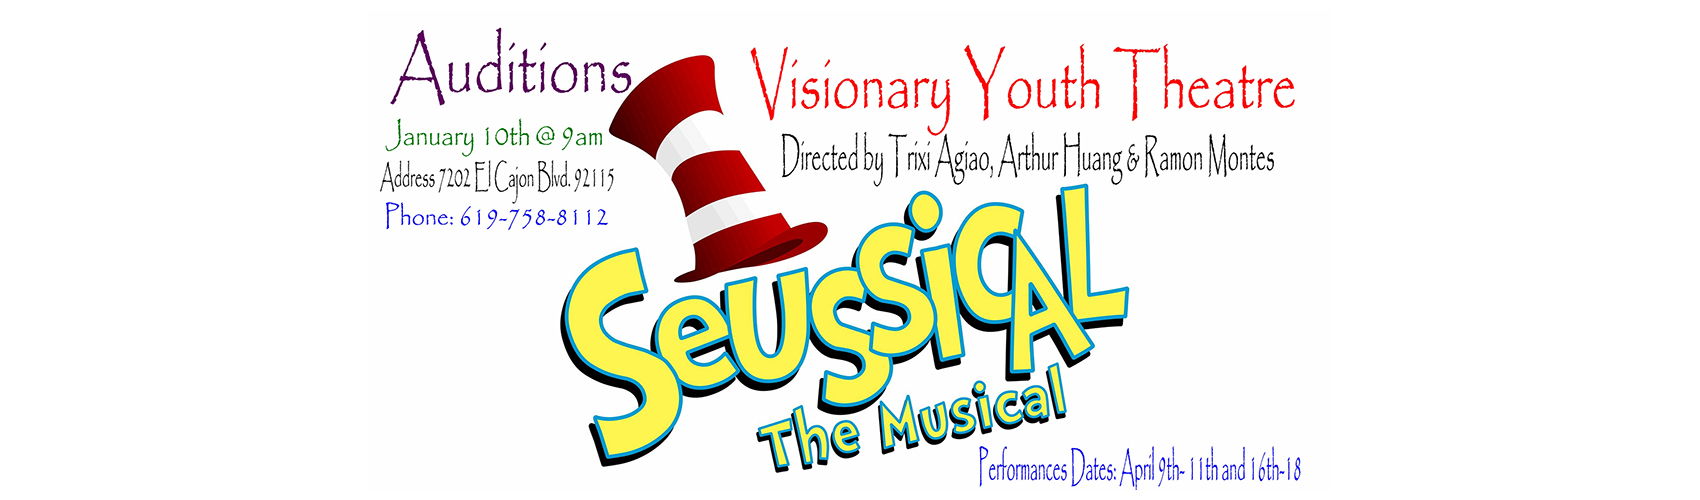 Seussical_Auditions